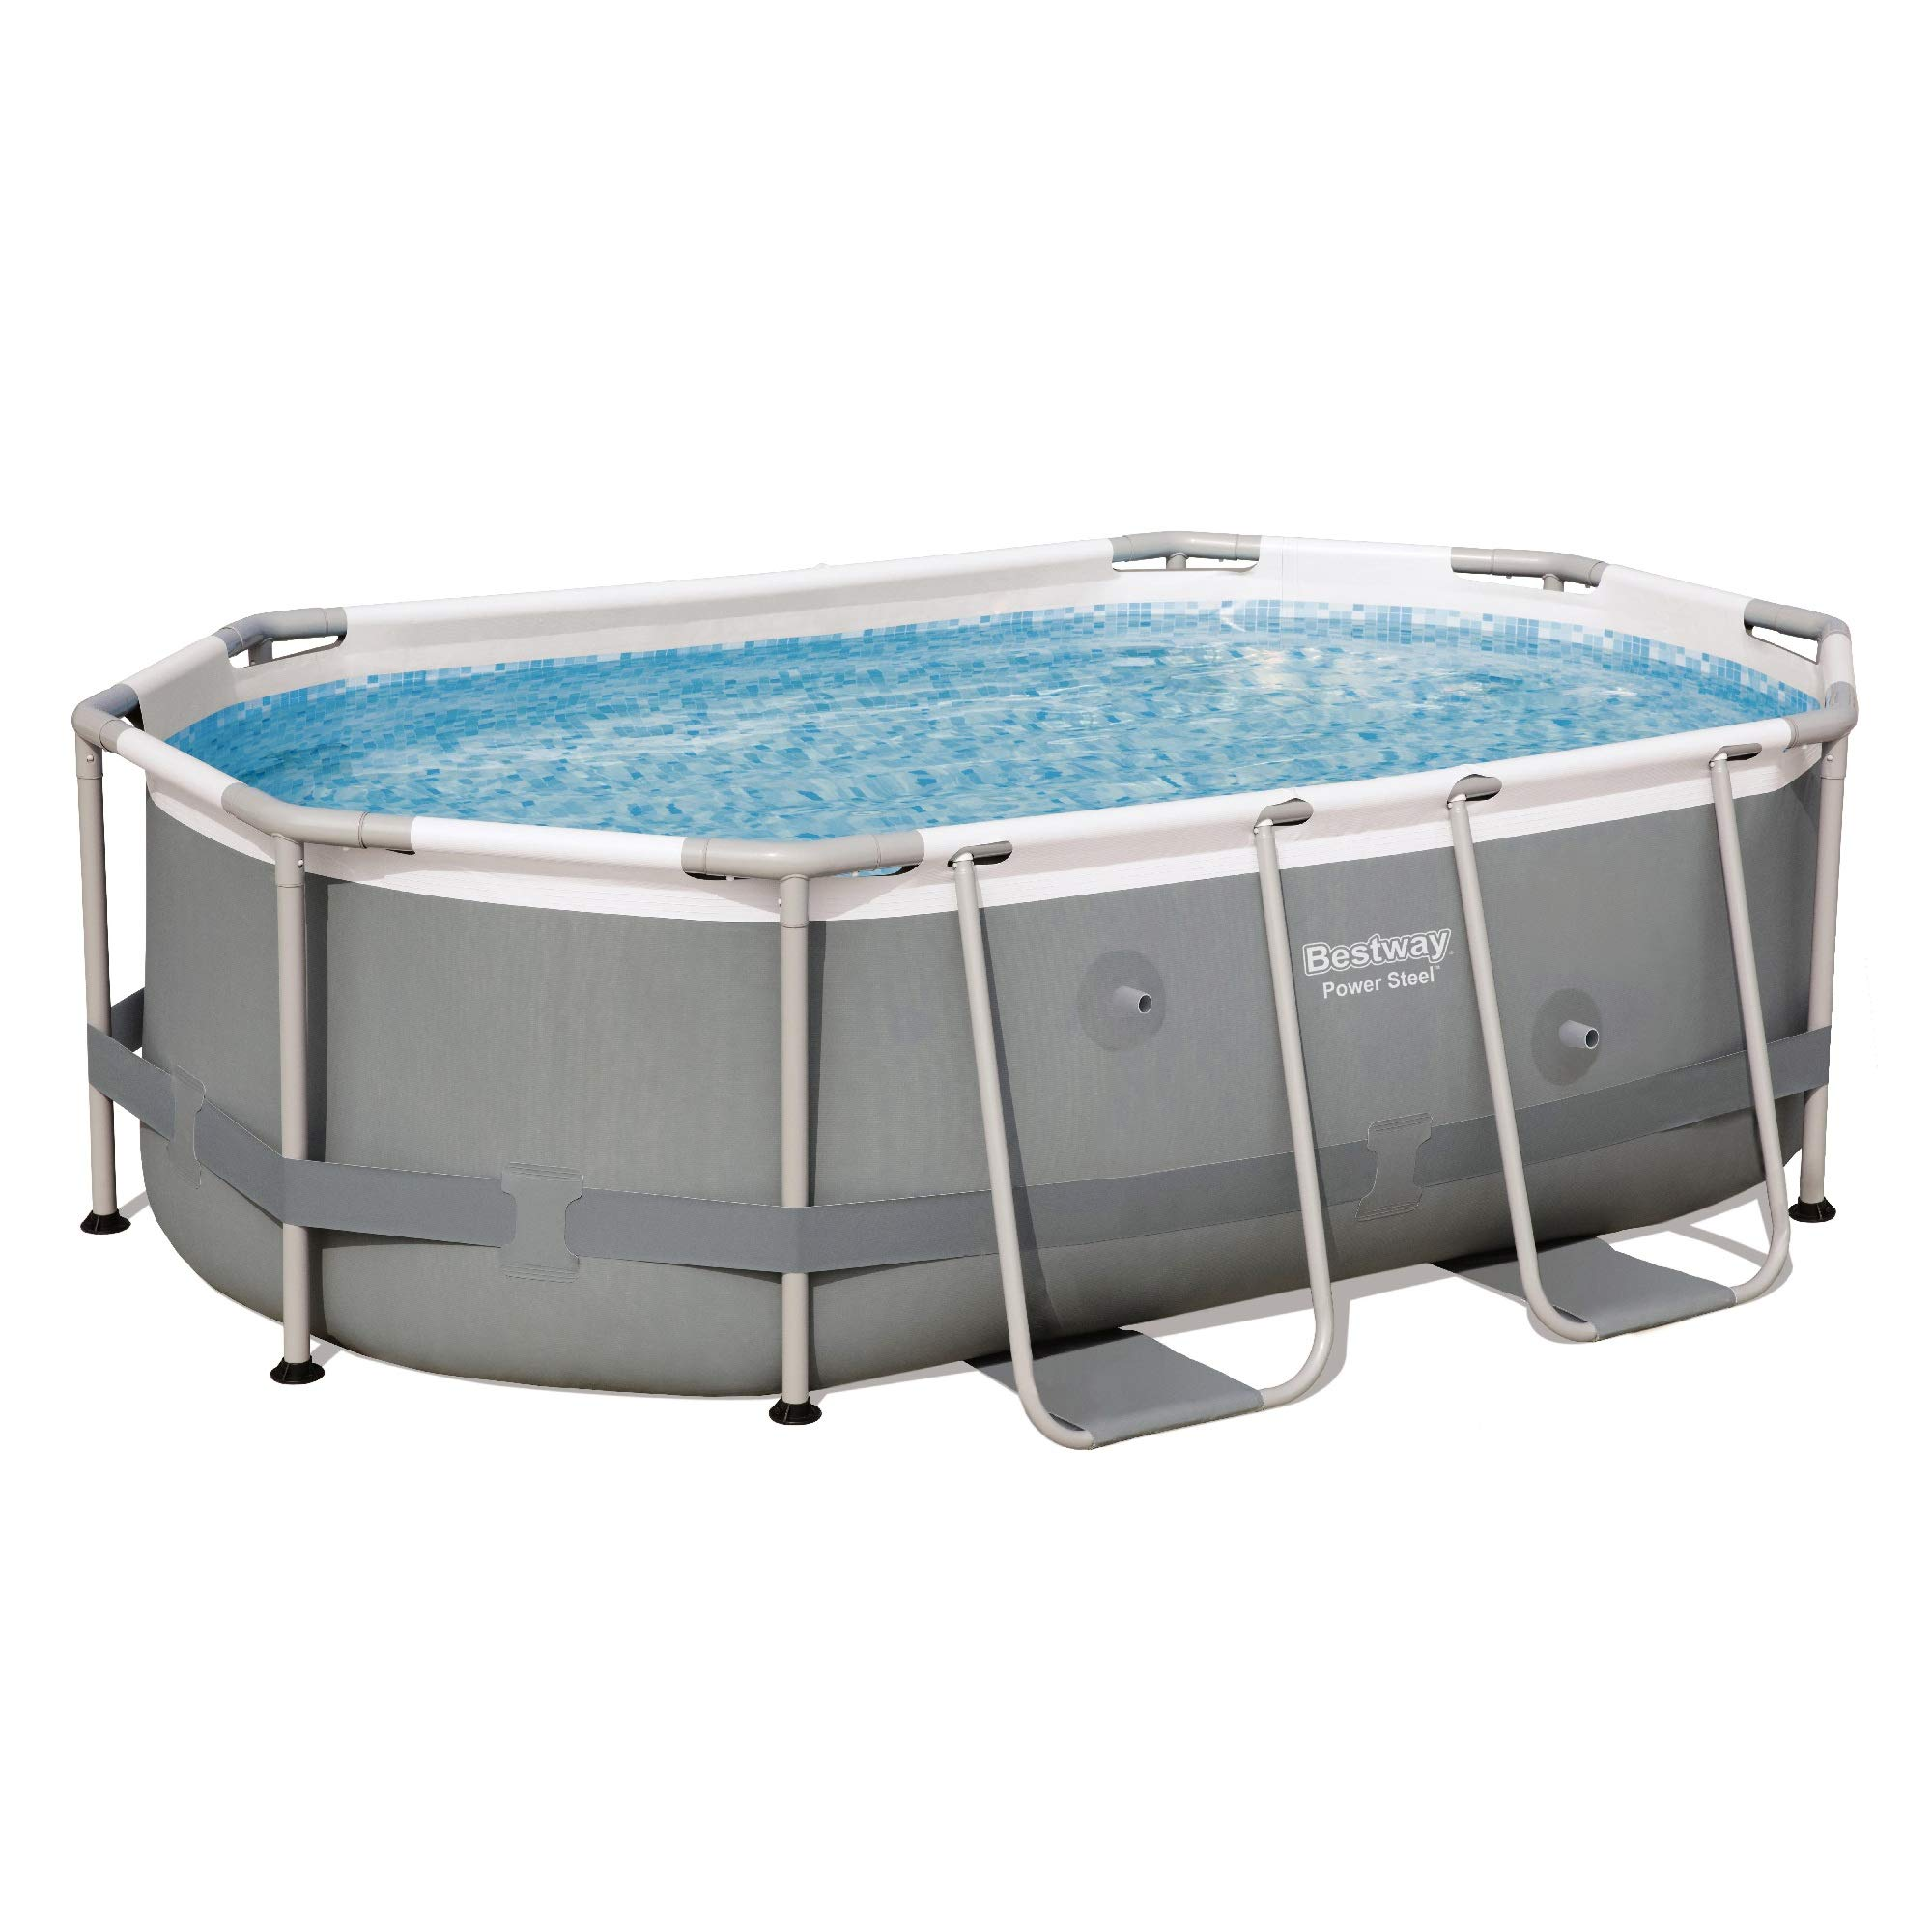 Bestway Power Steel - Piscina para Exteriores, Color Gris: Amazon.es: Jardín